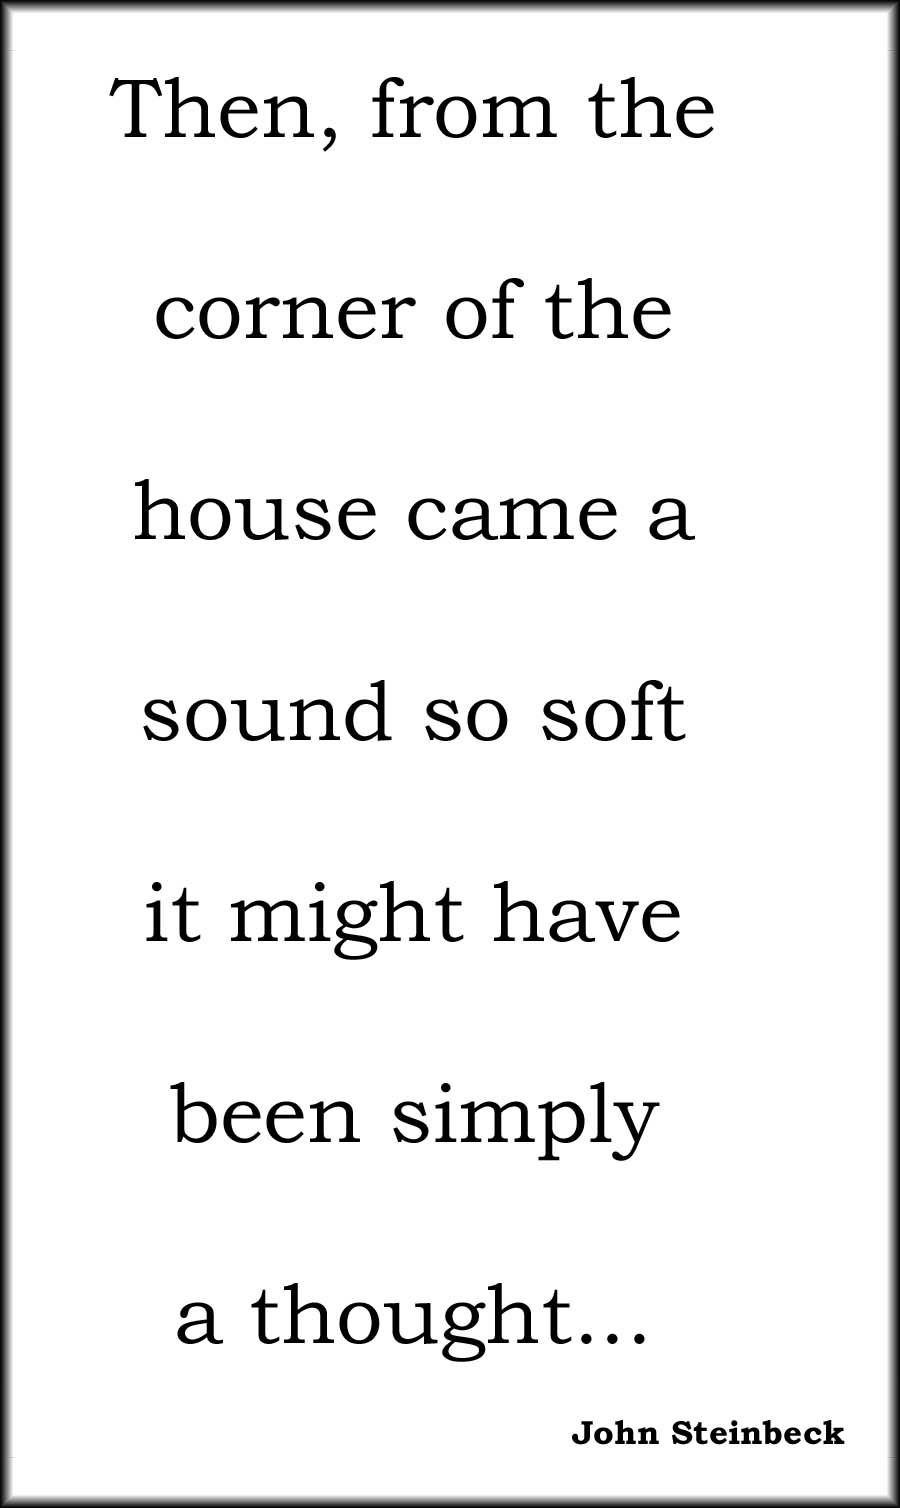 John Steinbeck I Would Be So Happy To Have Written This Sentence